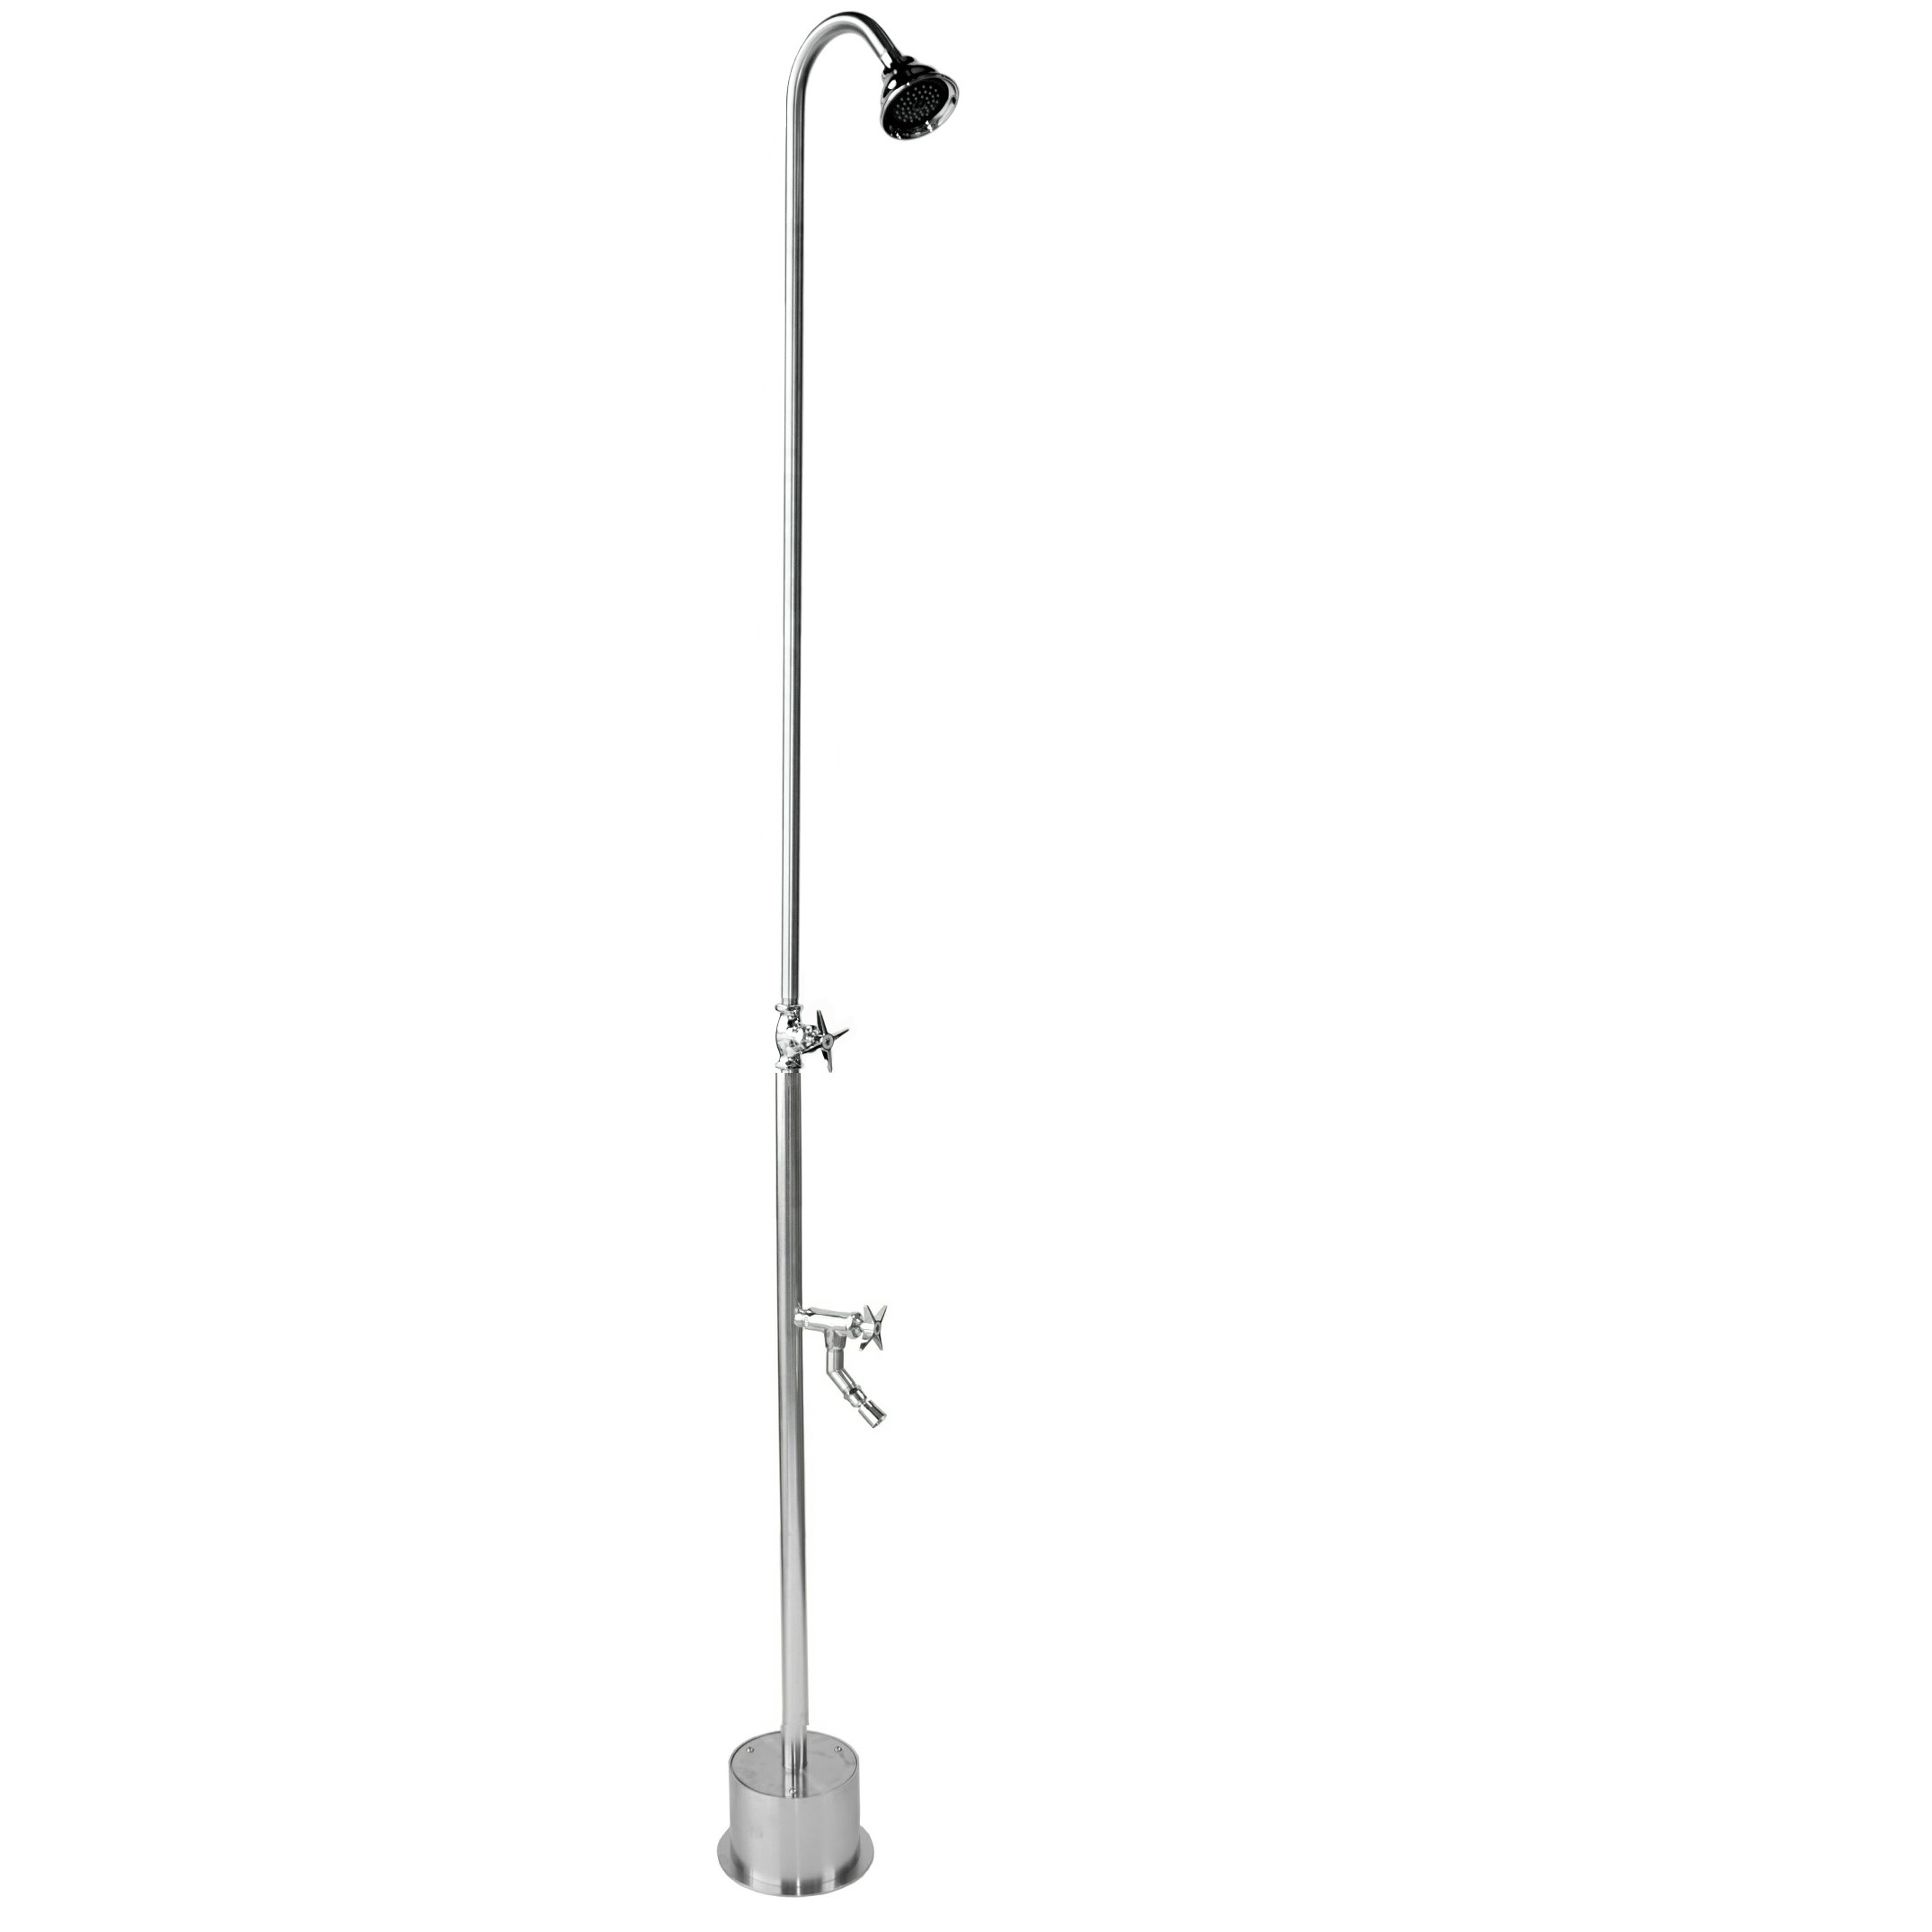 Outdoor Shower Company BS-1200-CHV Free Standing Single Supply Shower